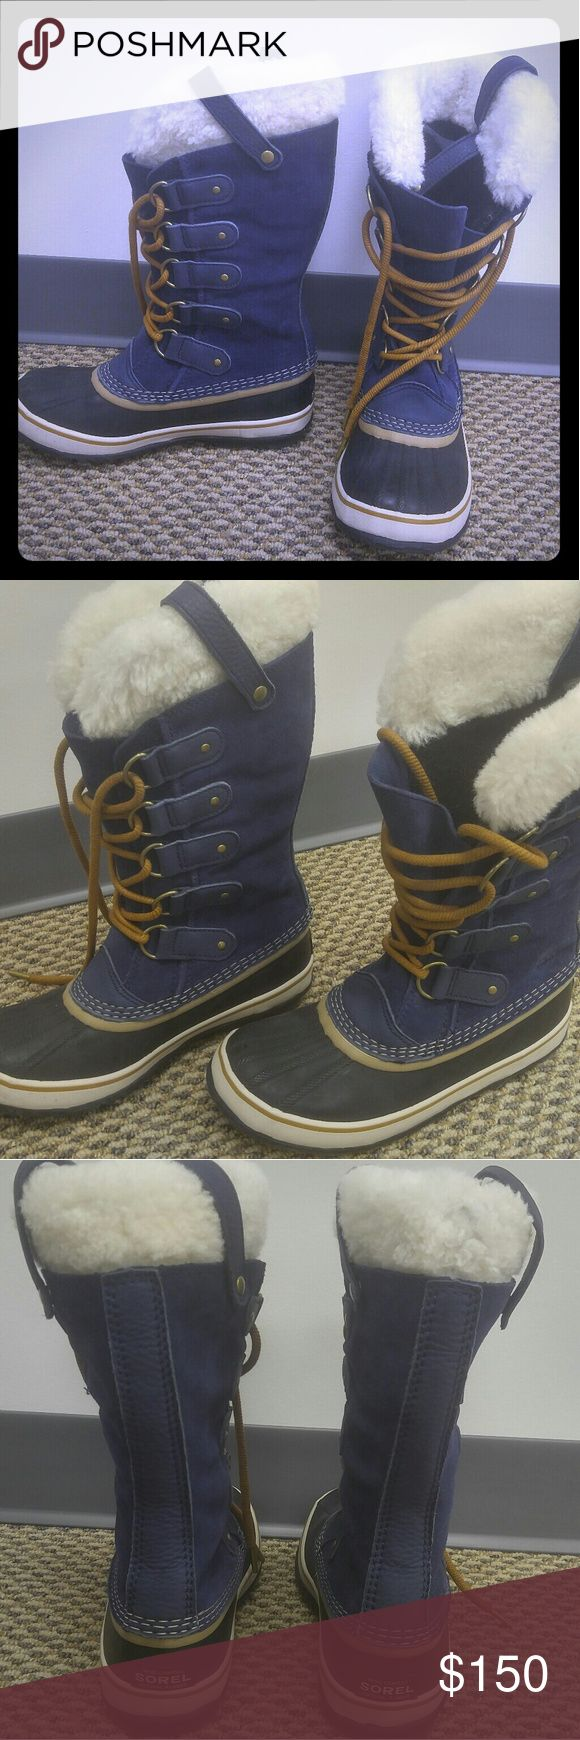 Brand new!!!Sorel snow boots...worn once! Perfect condition! Sorel Shoes Winter & Rain Boots